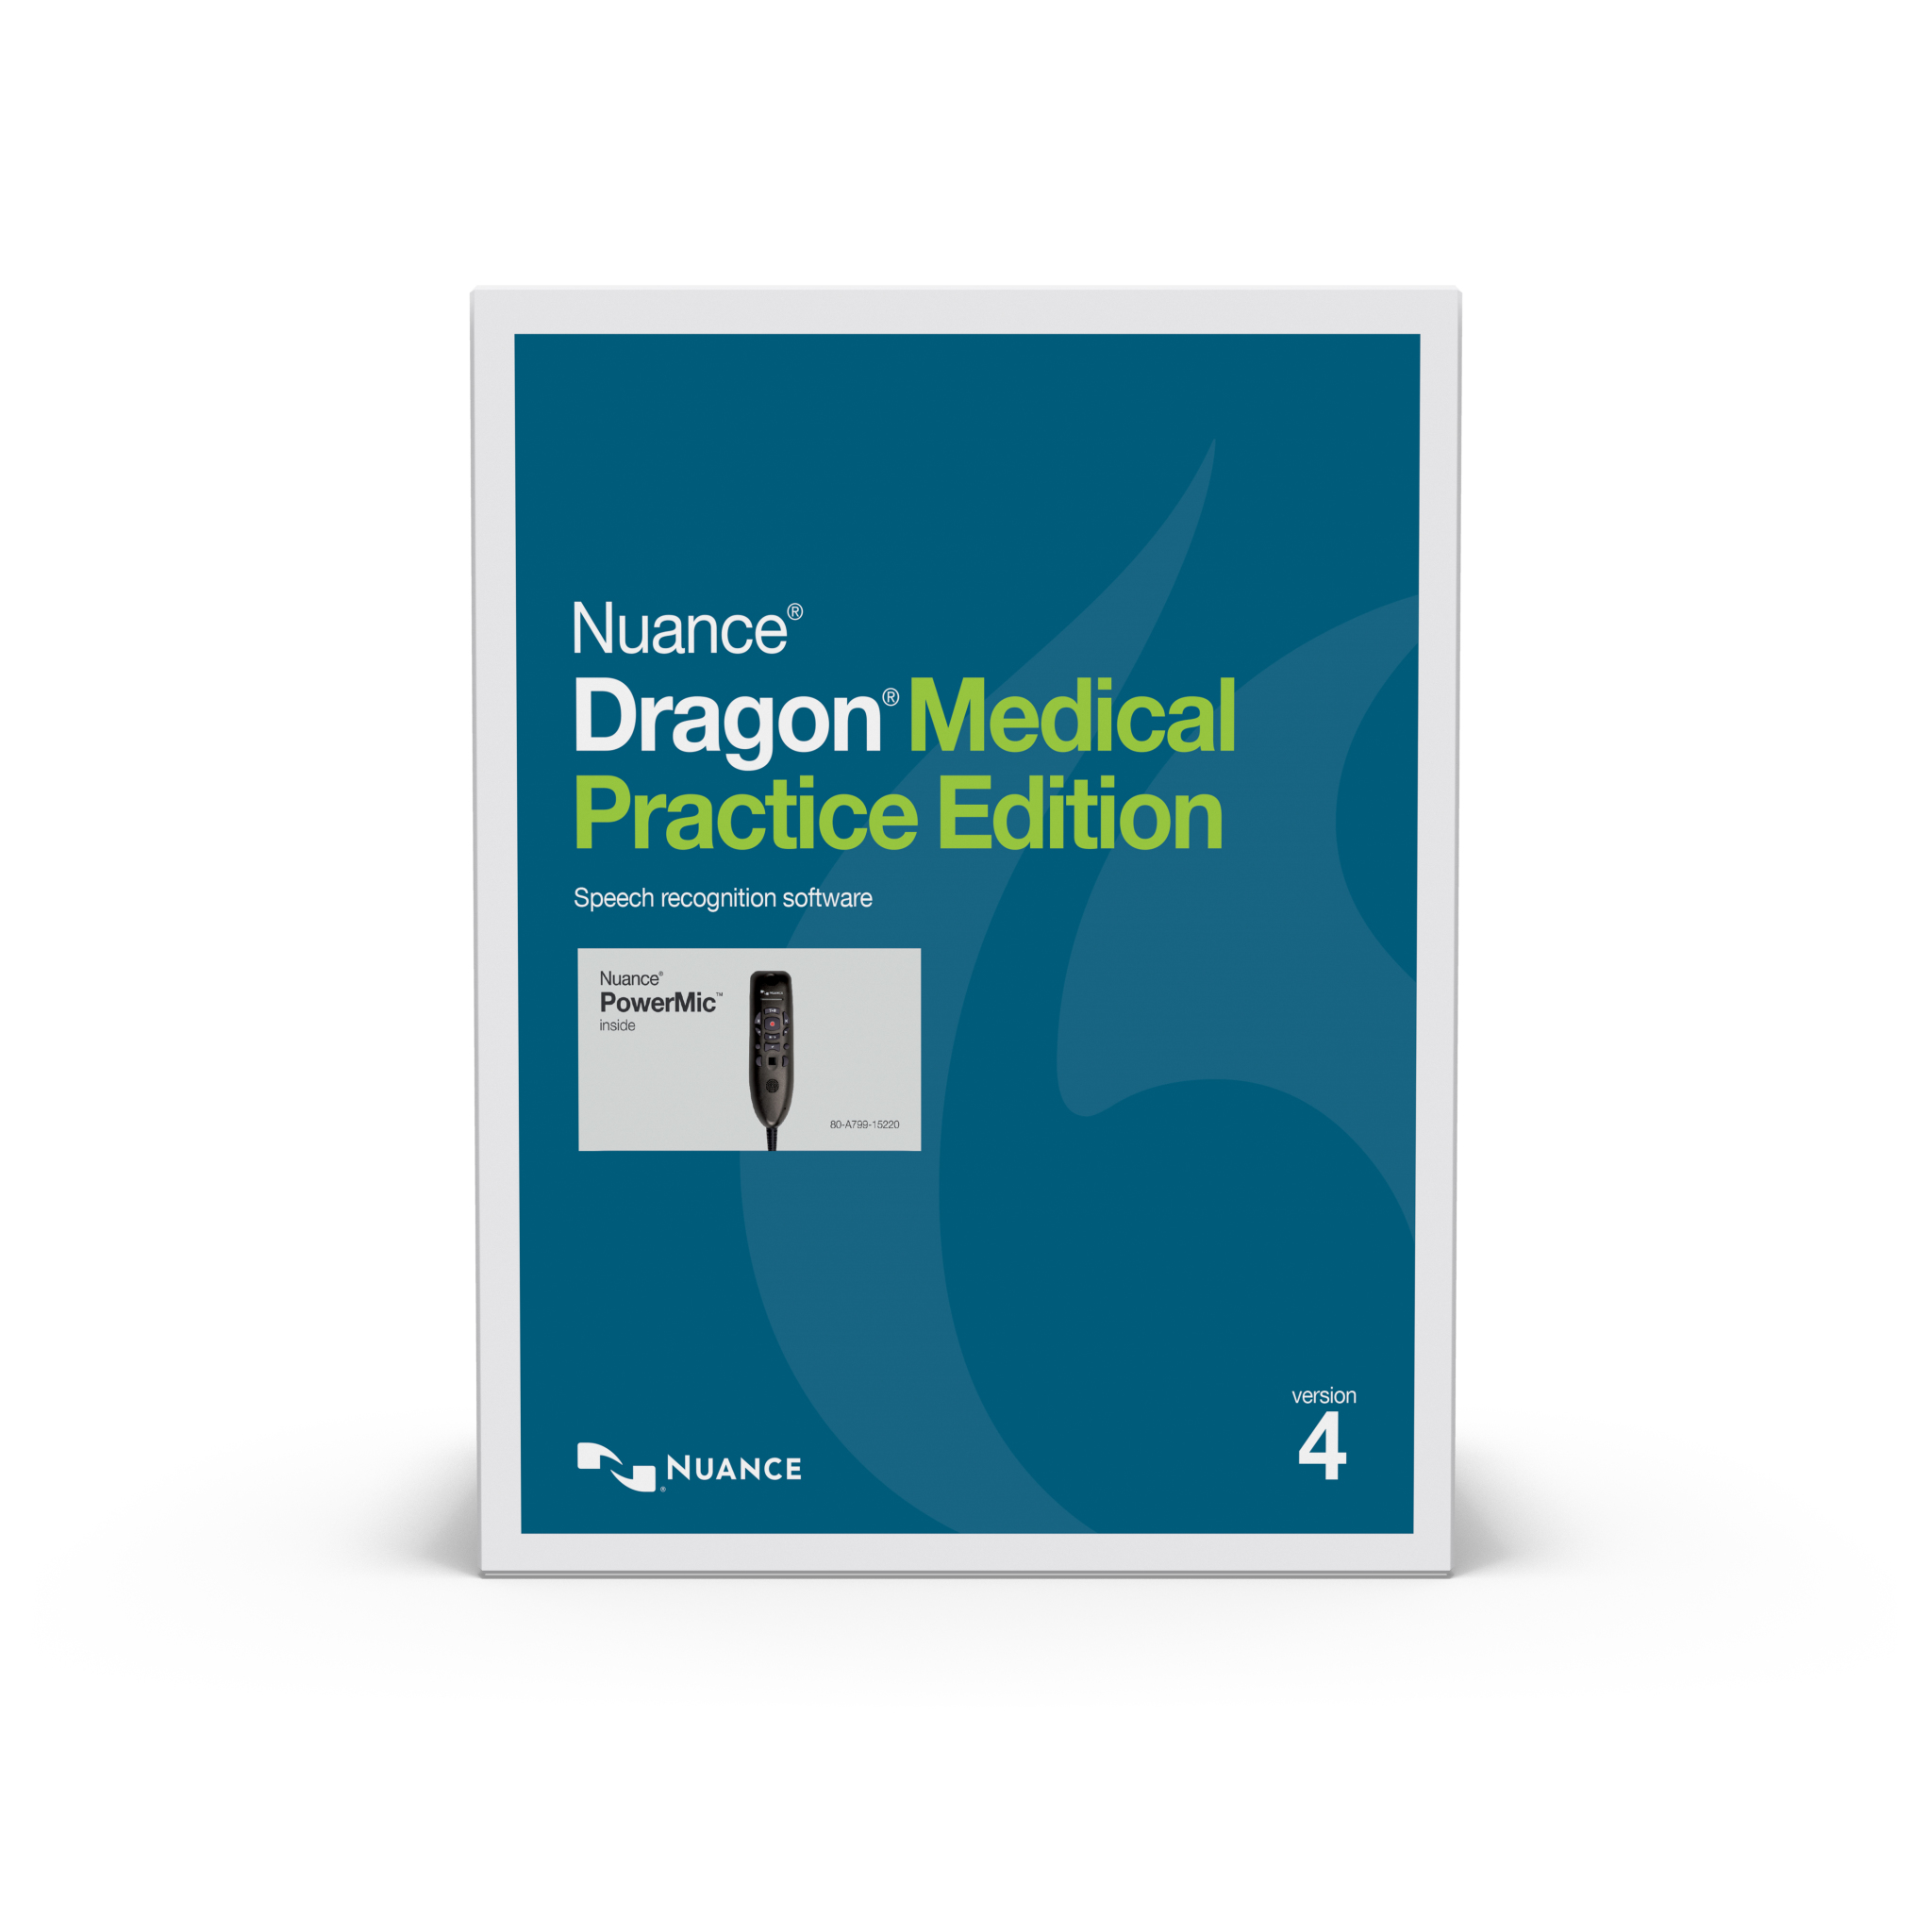 NUA-A709A-X97-4.0 DRAGON MEDICAL PRACTICE EDITION 4, WITH POWERMIC III